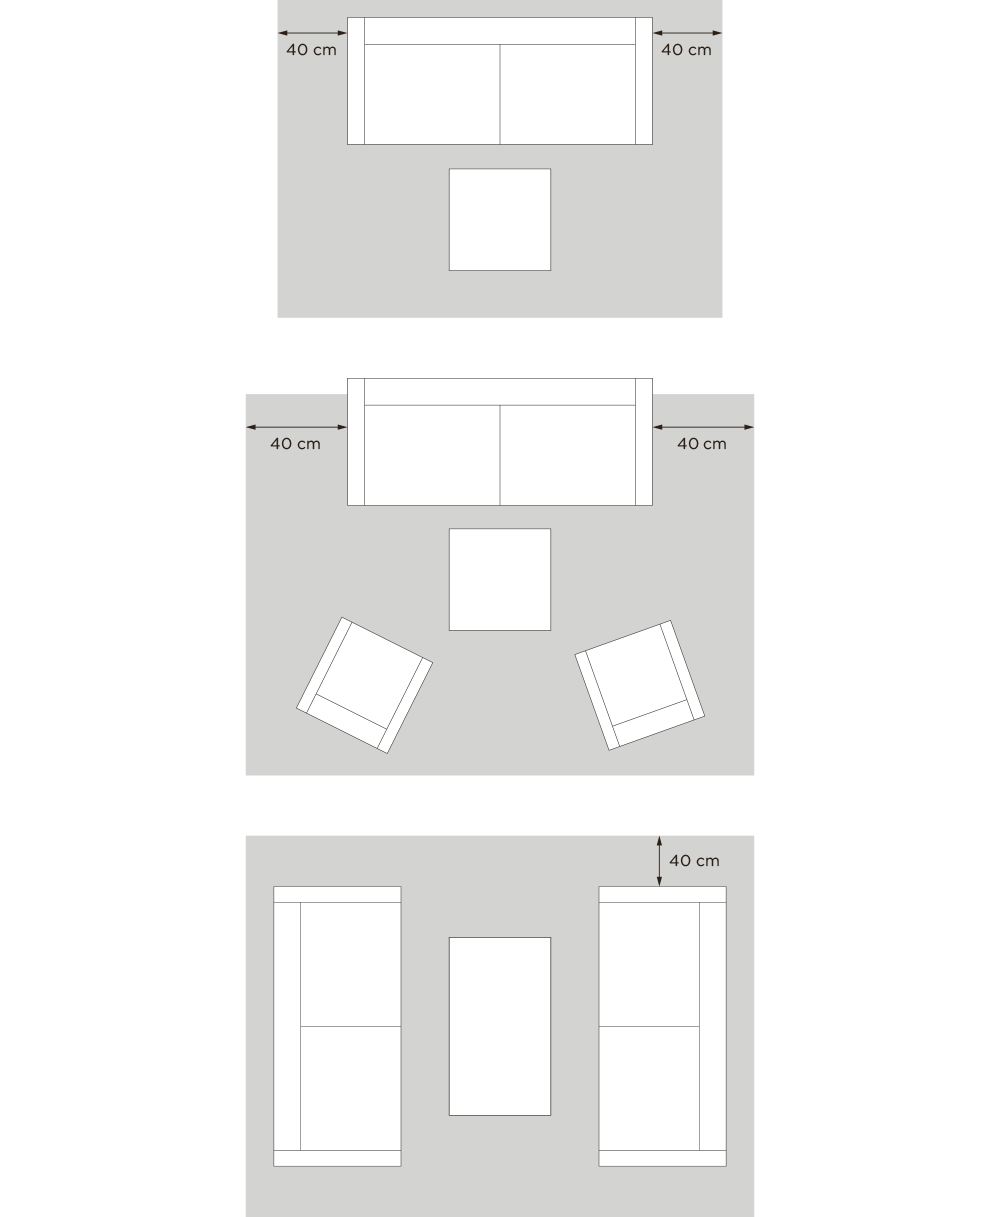 Layered style advice for the size of the rug and sofa in living room and different placements